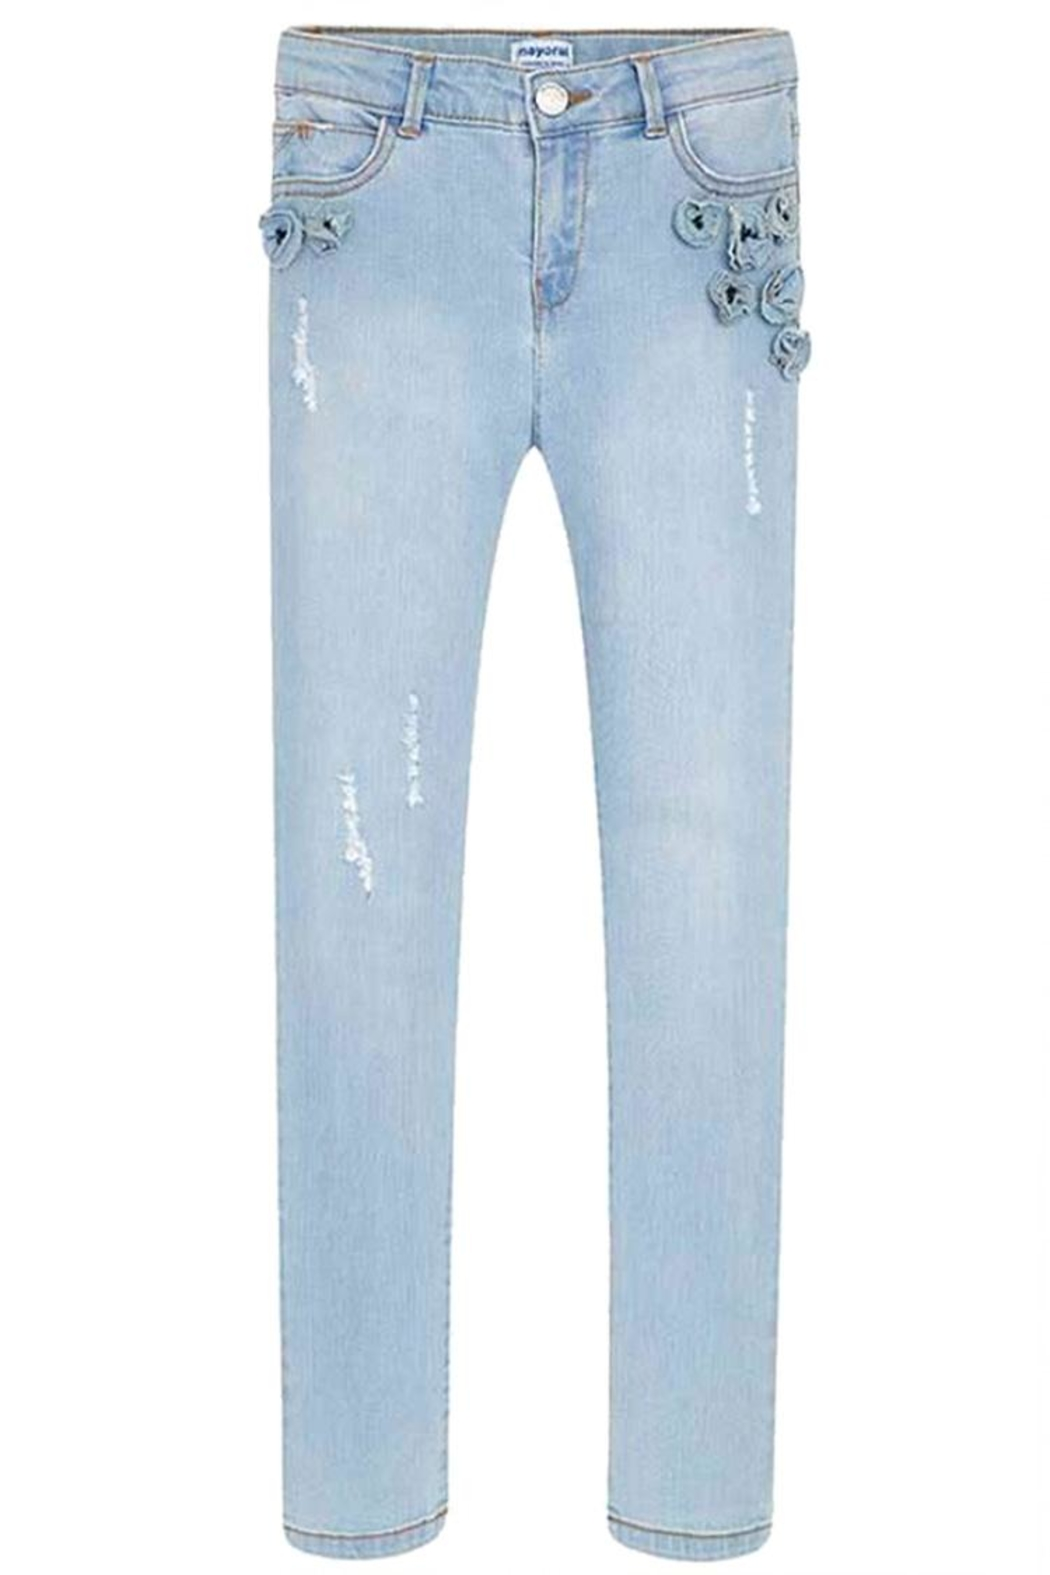 Mayoral Floral Distressed Jean - Main Image